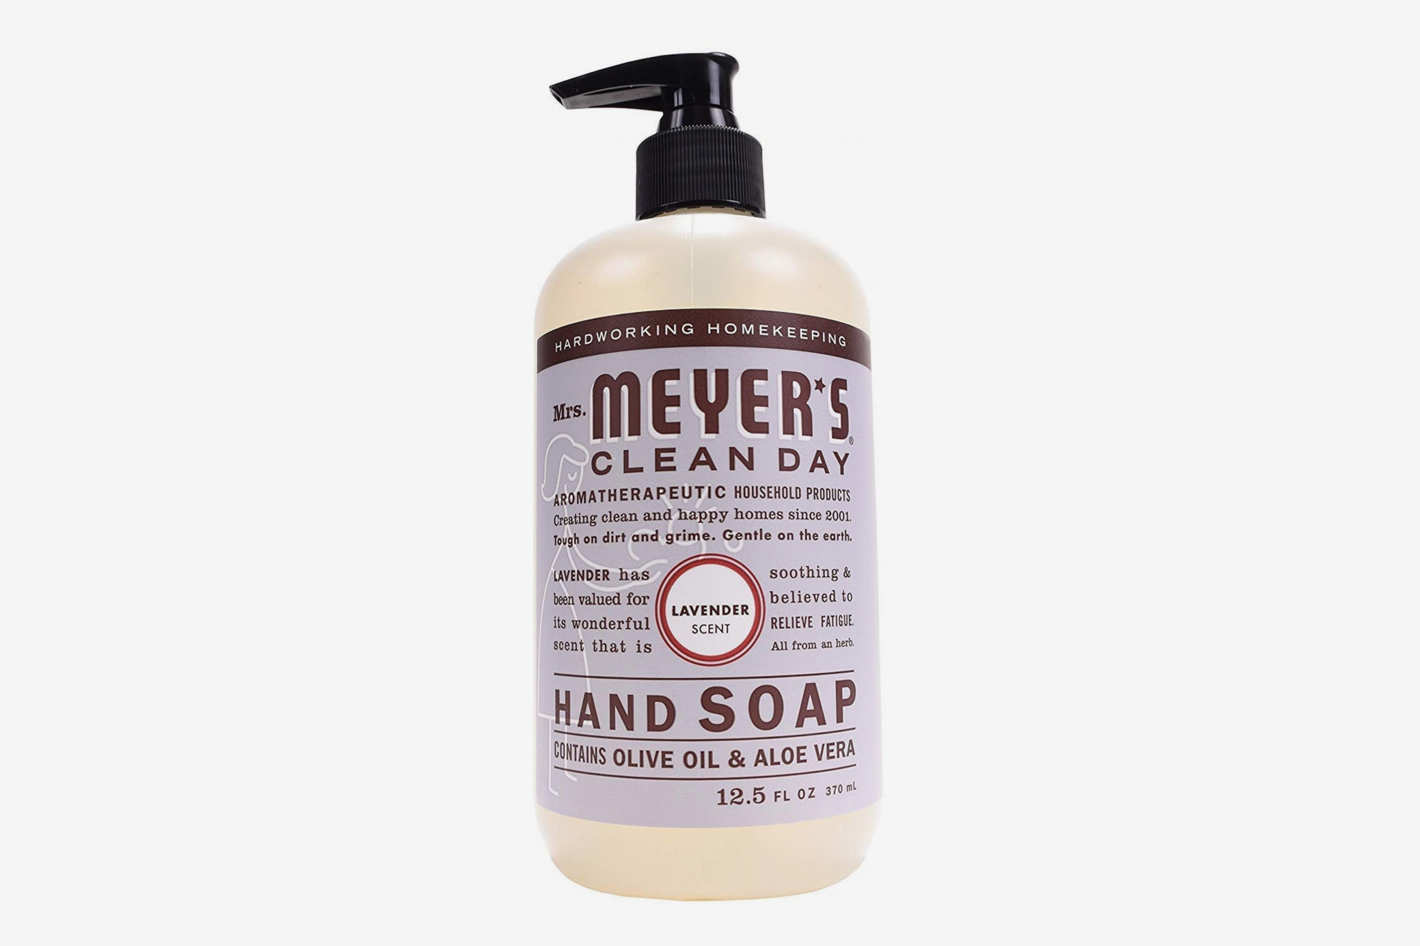 4. Mrs. Meyer's Hand Soap Lavender (New entry)